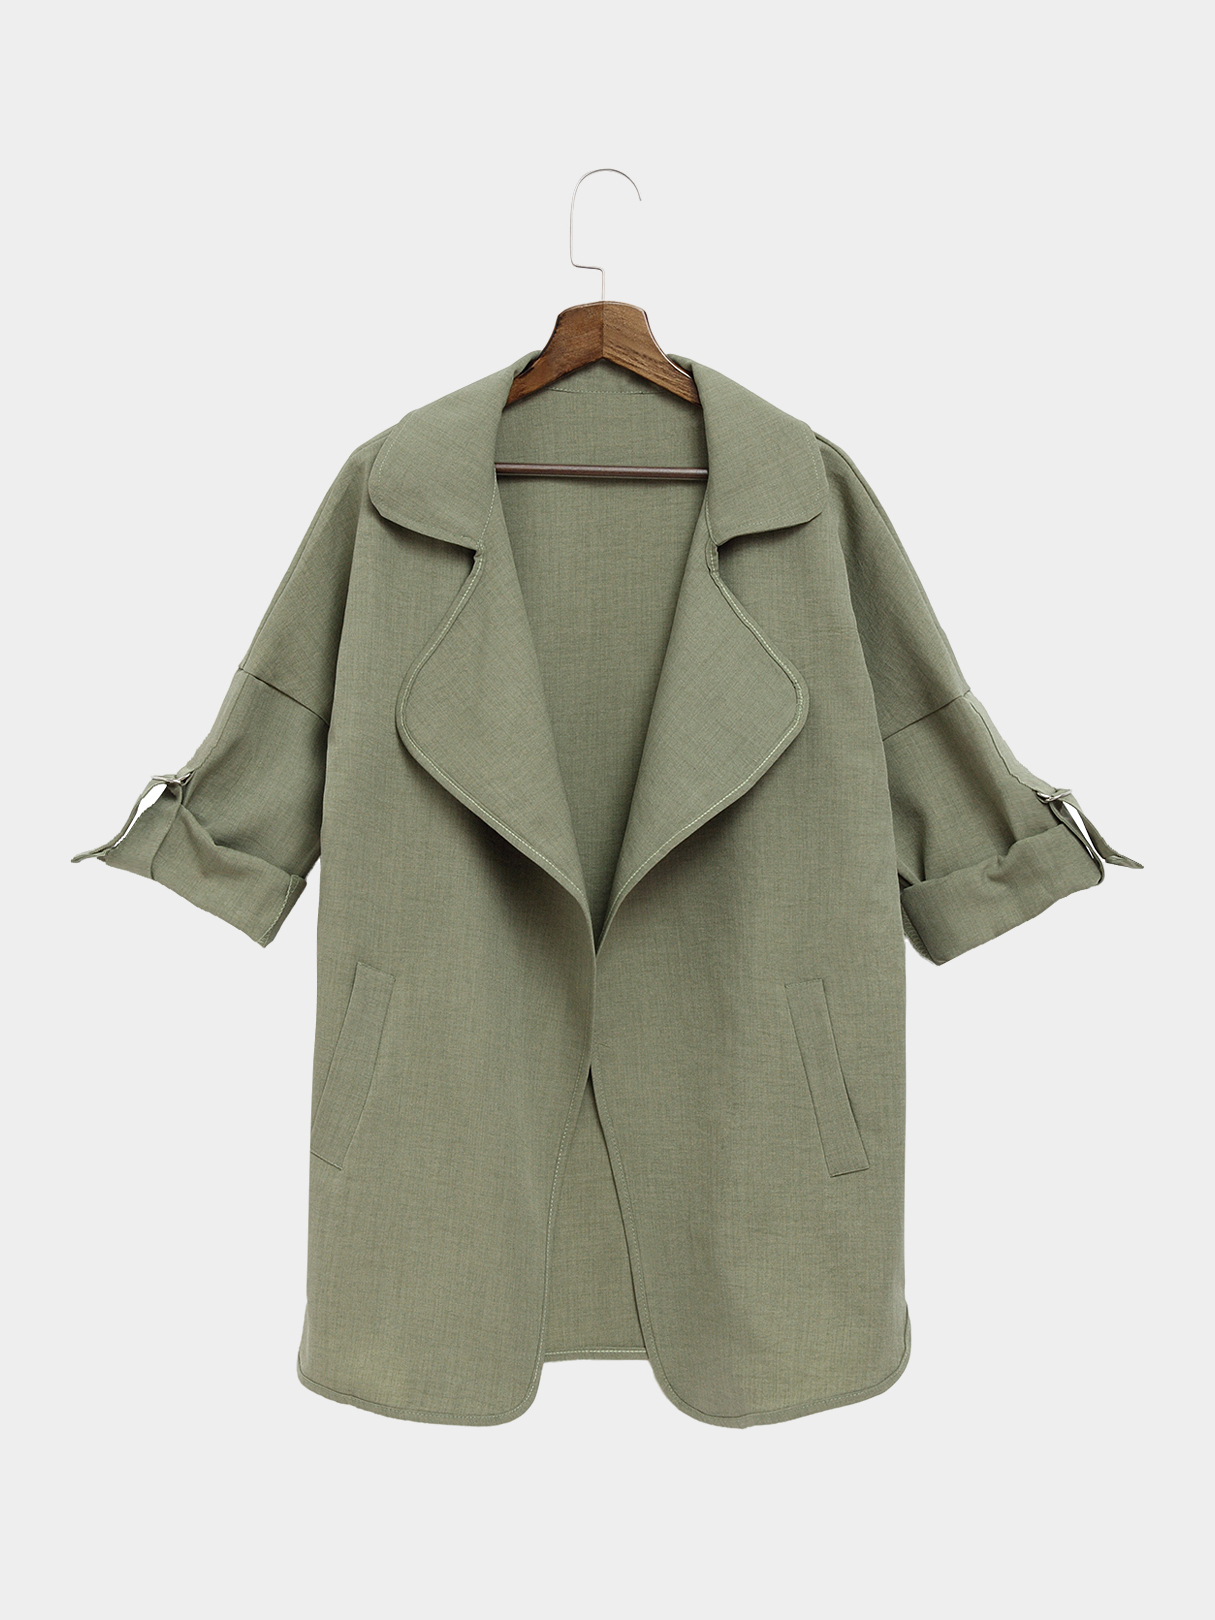 Army Green Trench Coat With Lapel Collar john mickel ferns for american gardens